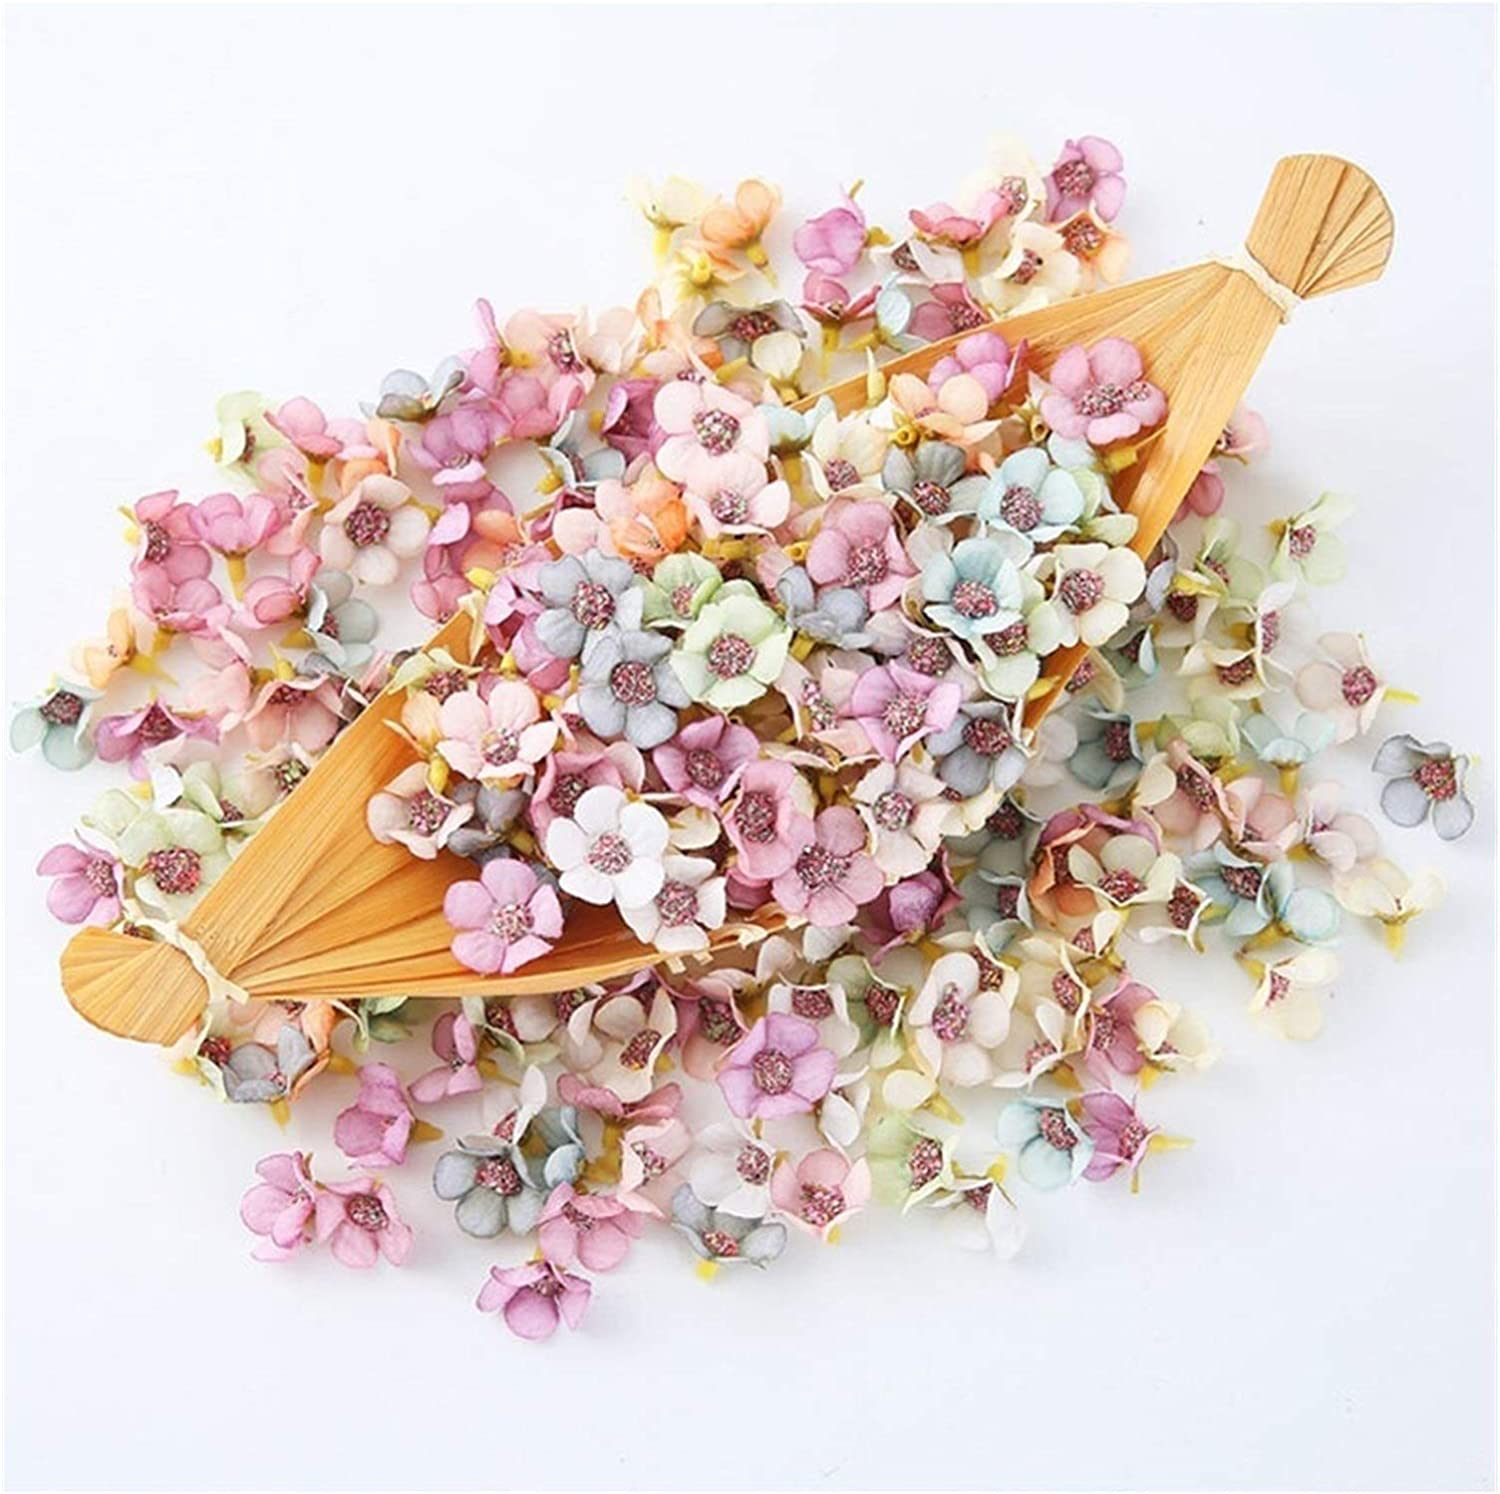 xiaofeng214 100pcs/Lot 2cm Multicolor Daisy Flower Head Mini Silk Artificial Flower for Crown Scrap Wedding Home Decor DIY Garland Headdress